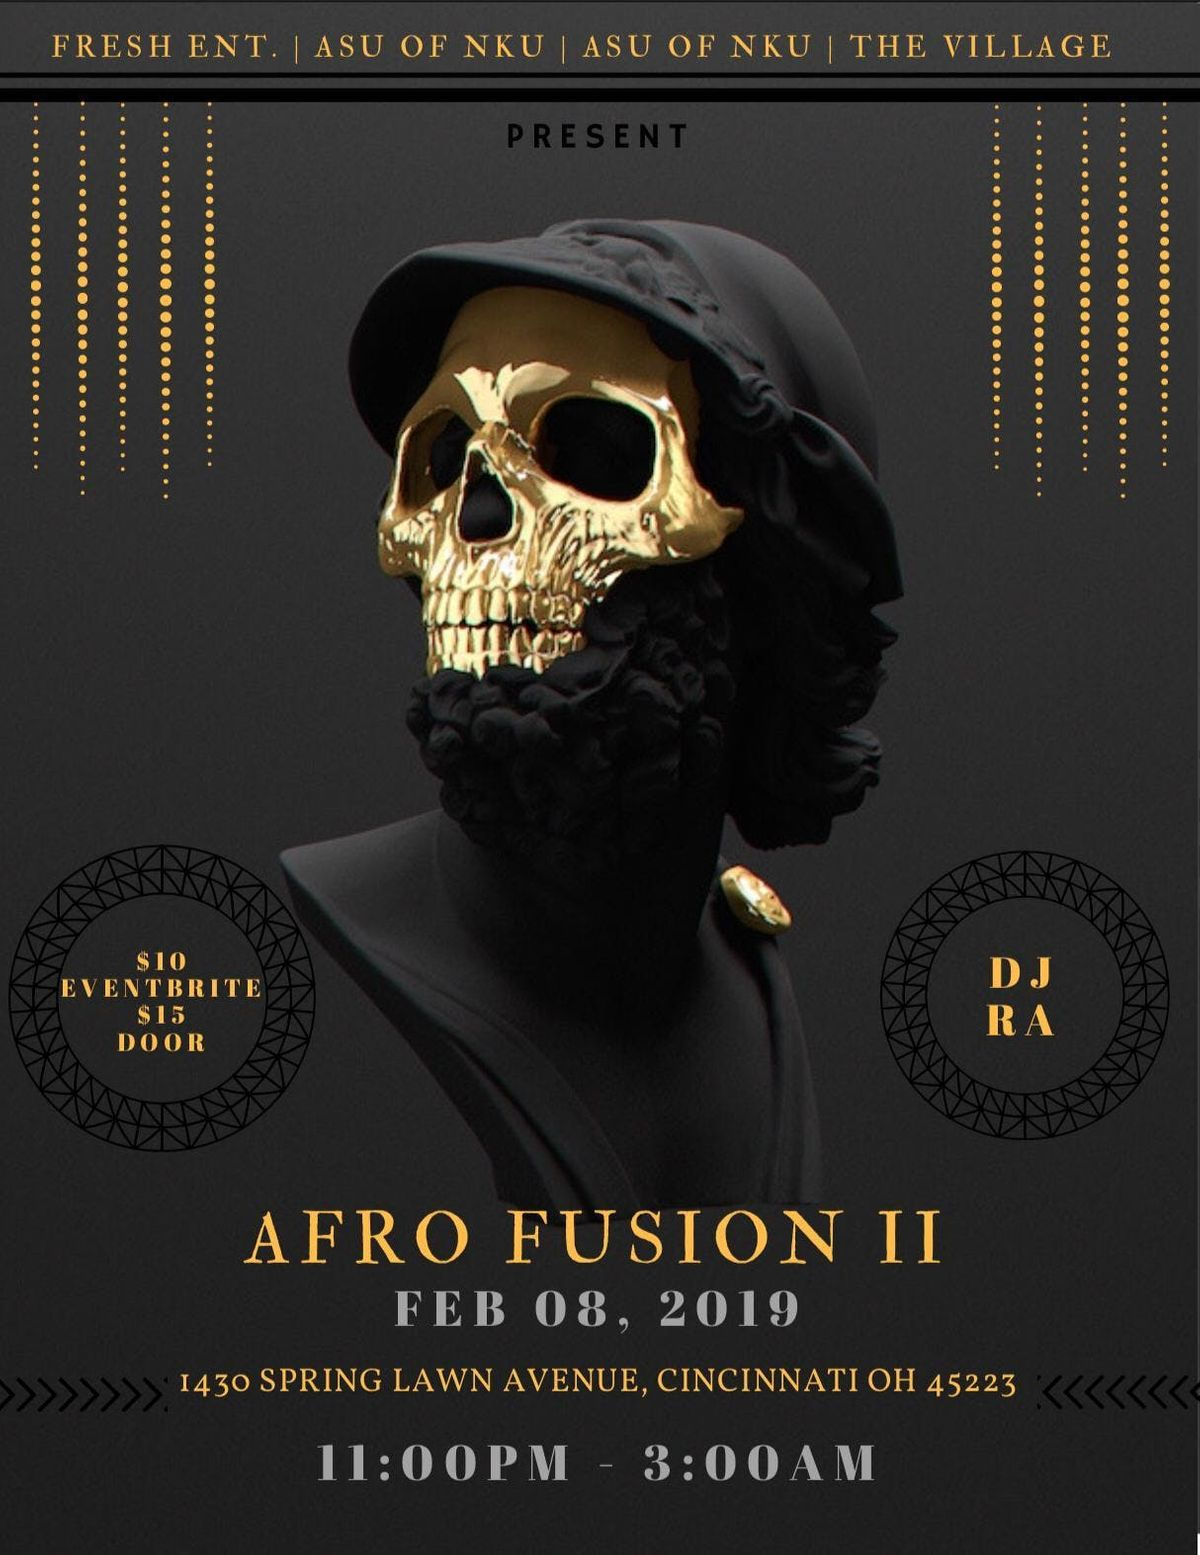 Afro Fusion II